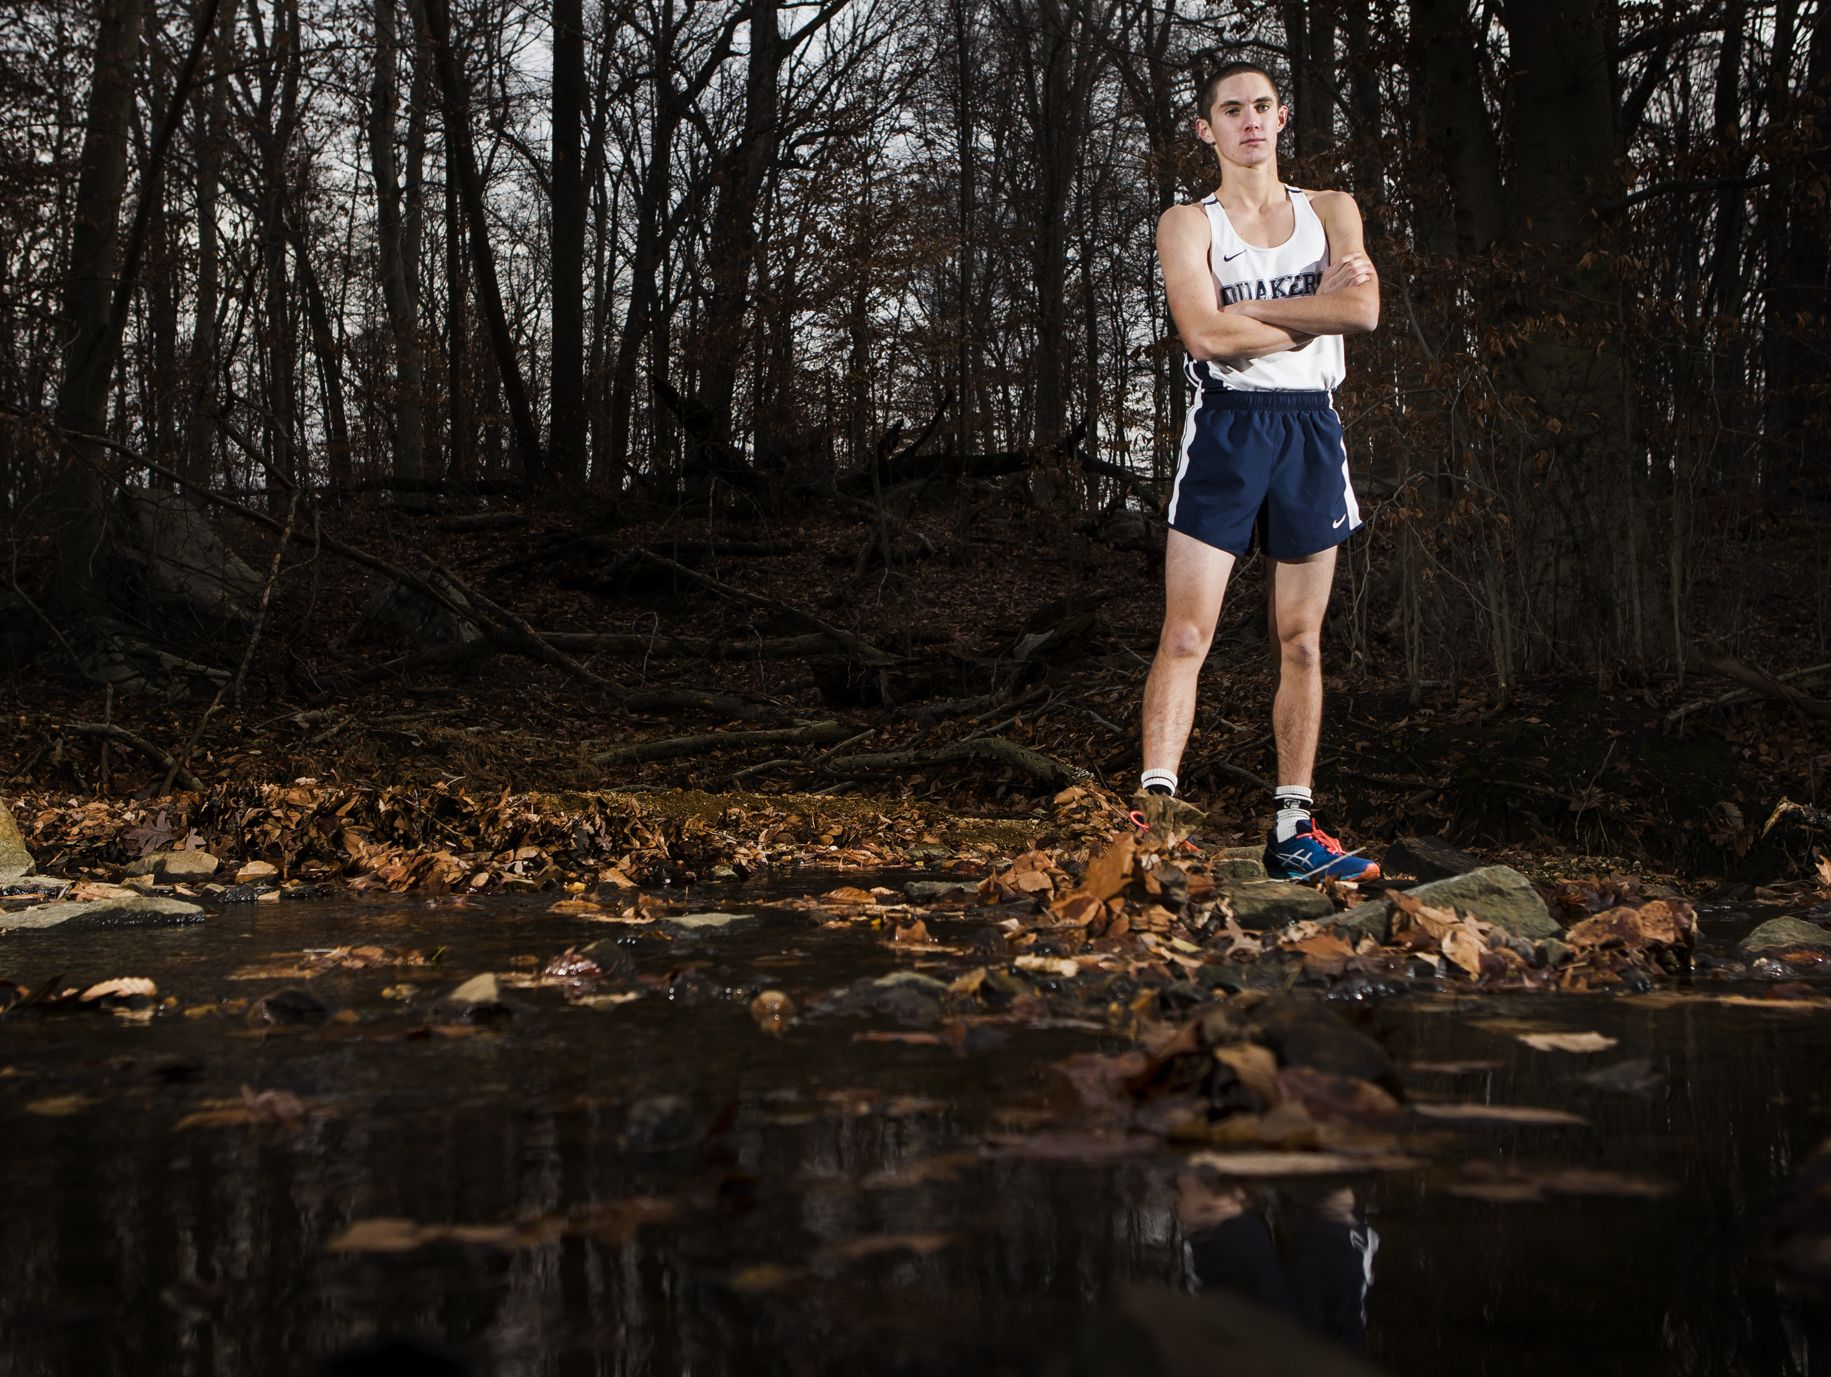 """""""Tennis has made me a great cross country competitor, and cross country has made me a better tennis player,"""" Connor Nisbet said."""